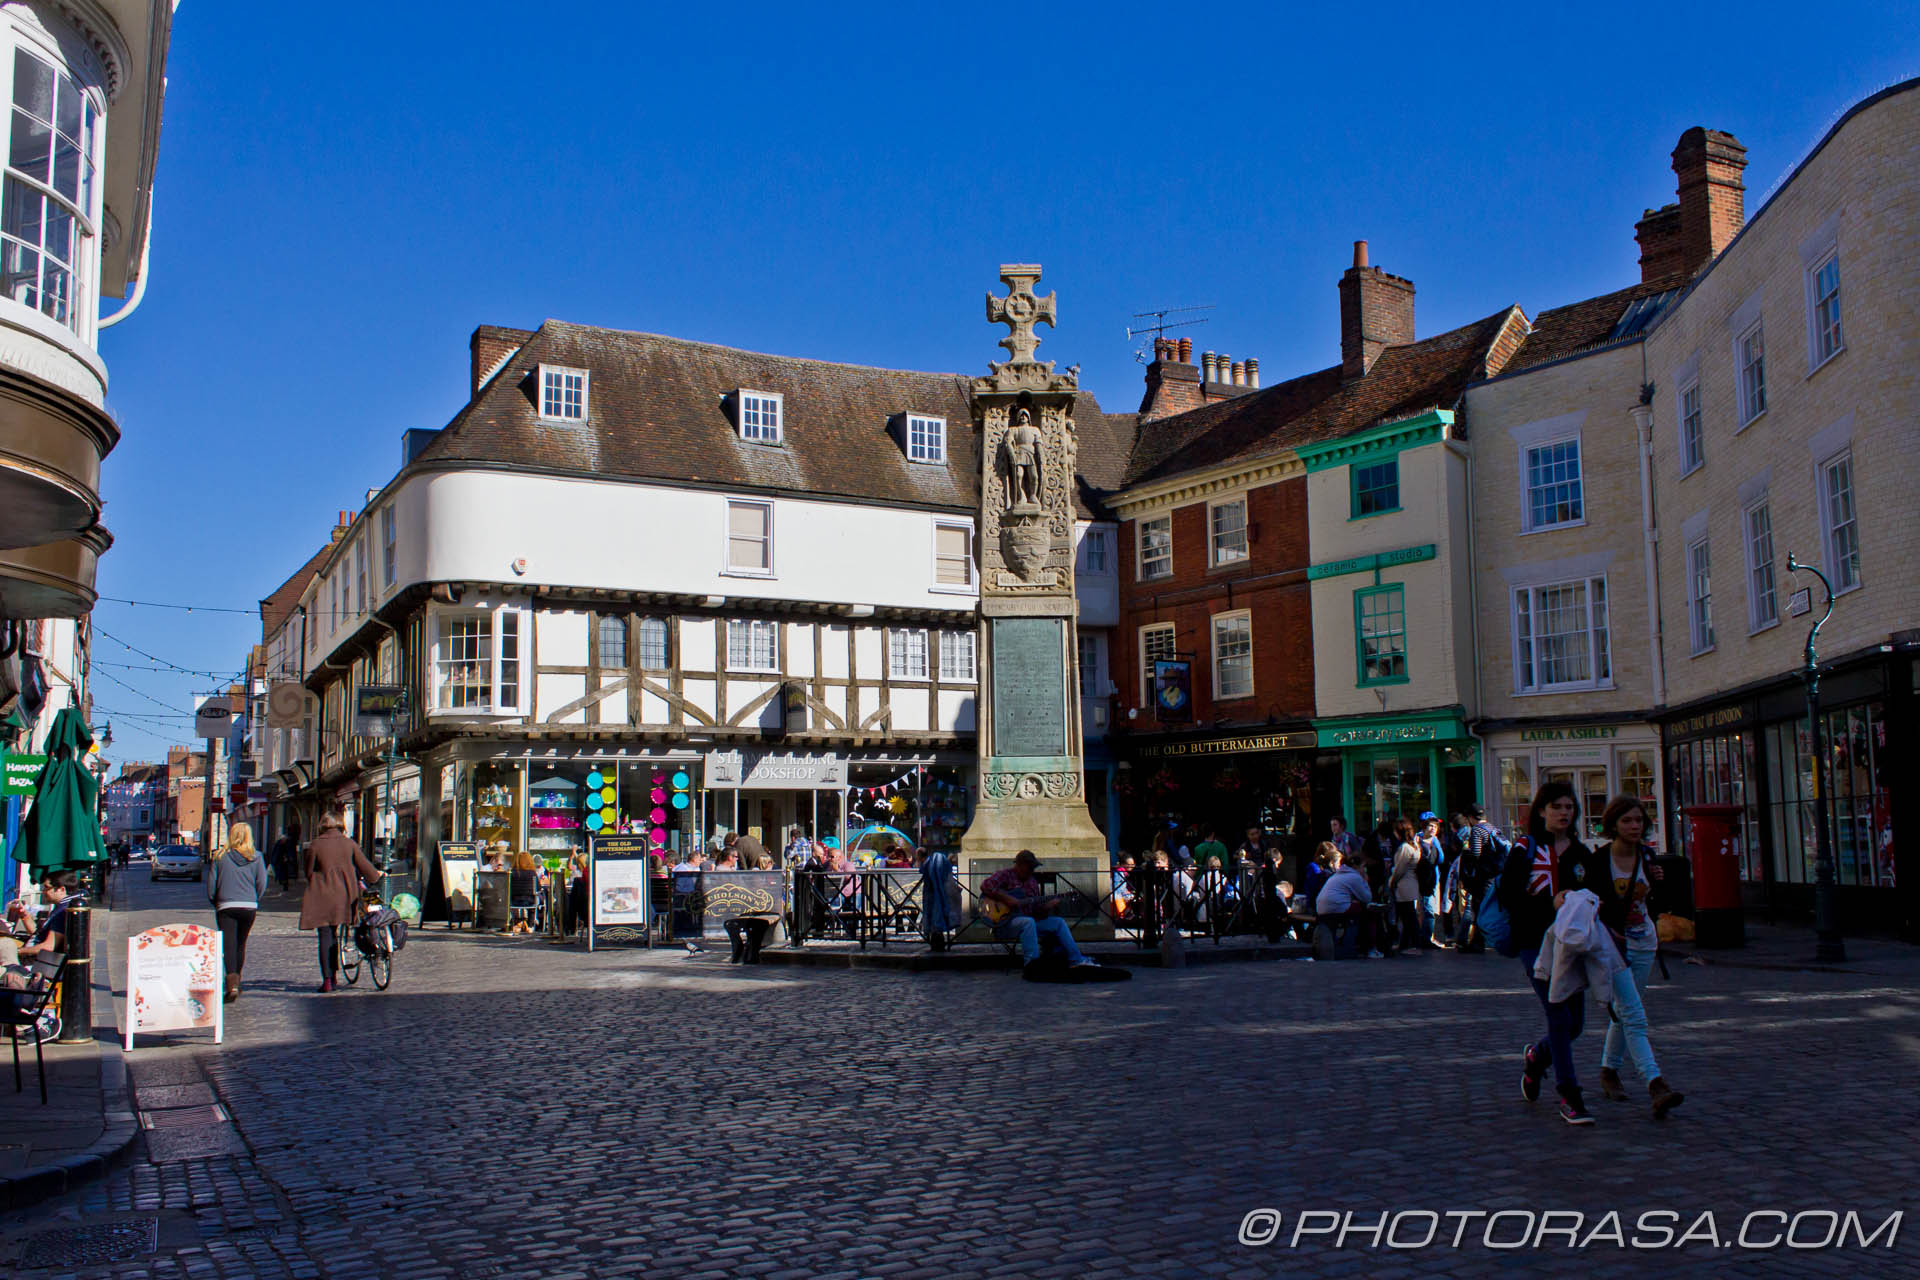 http://photorasa.com/canterbury-trip/butter-market-outside-canterbury-cathedral/